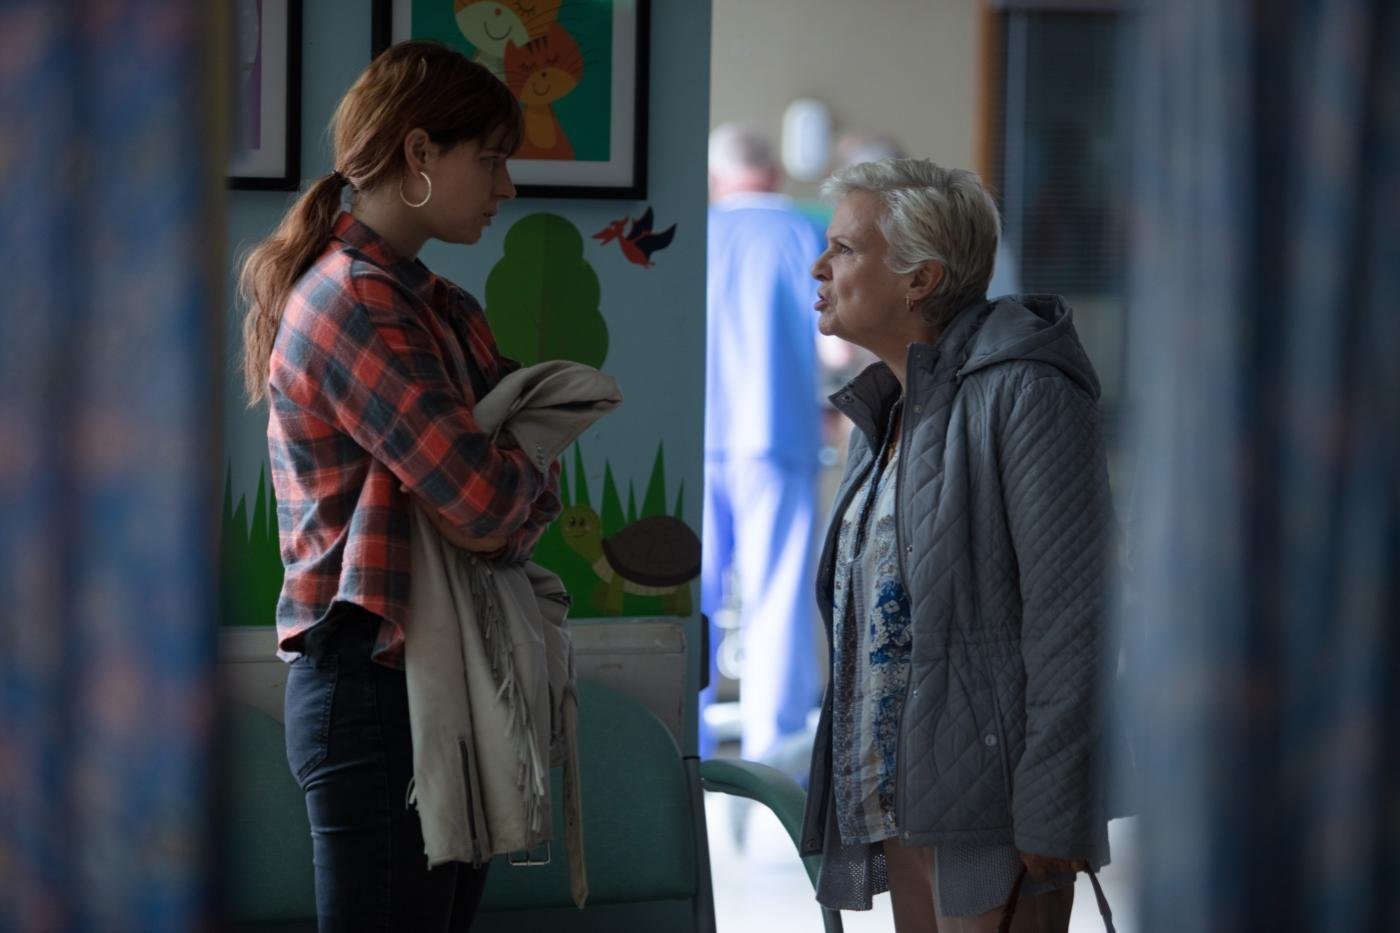 Julie Walters and Jessie Buckley in Wild Rose (2018)